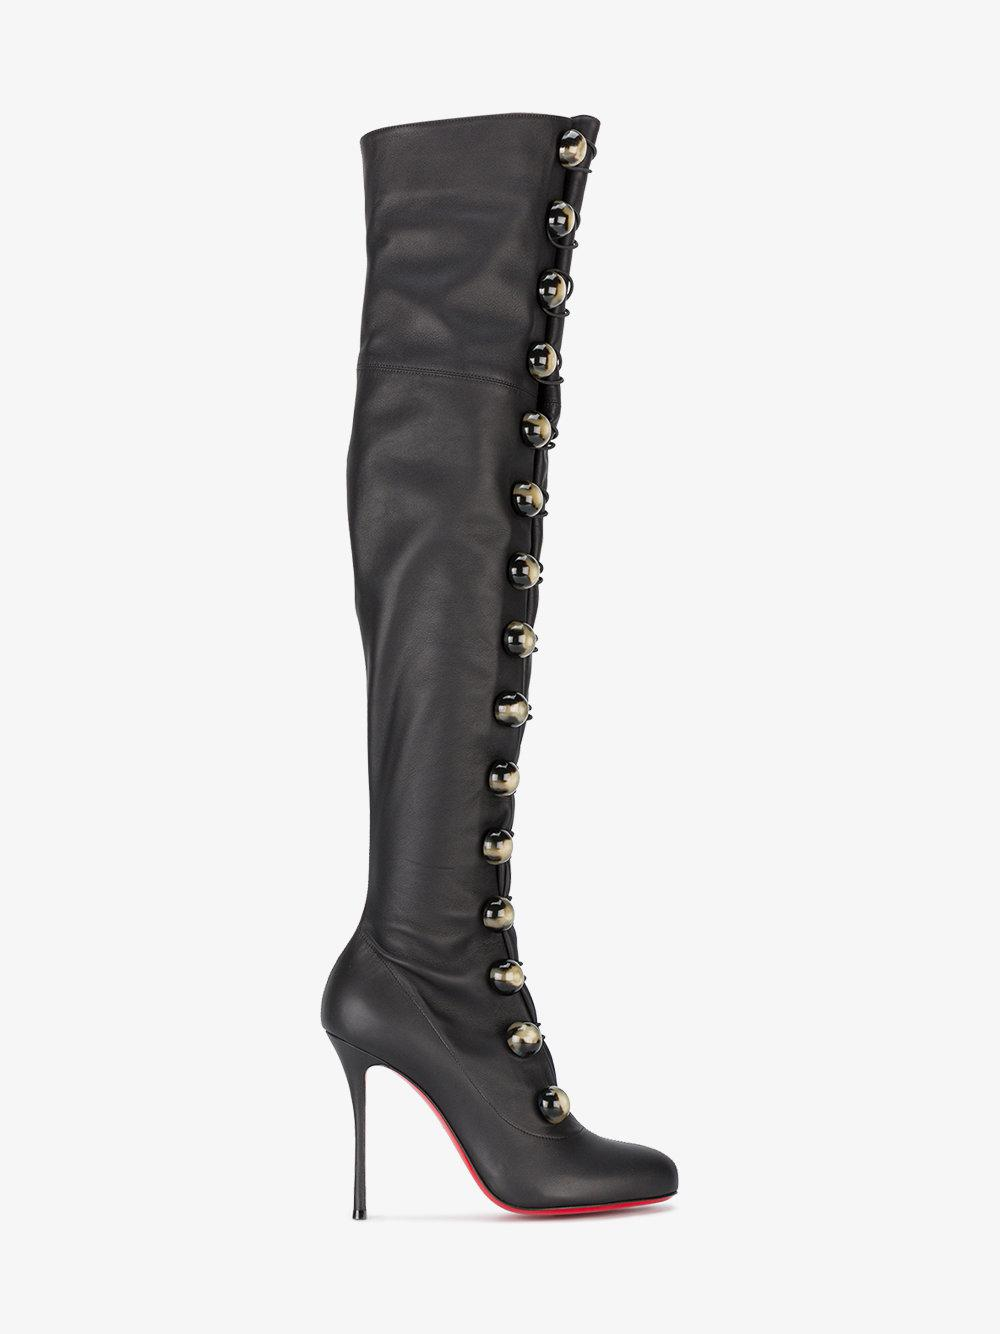 718b4c0aa6 Christian Louboutin Fabiola 100 Lace-up Thigh-high Boots in Black - Lyst